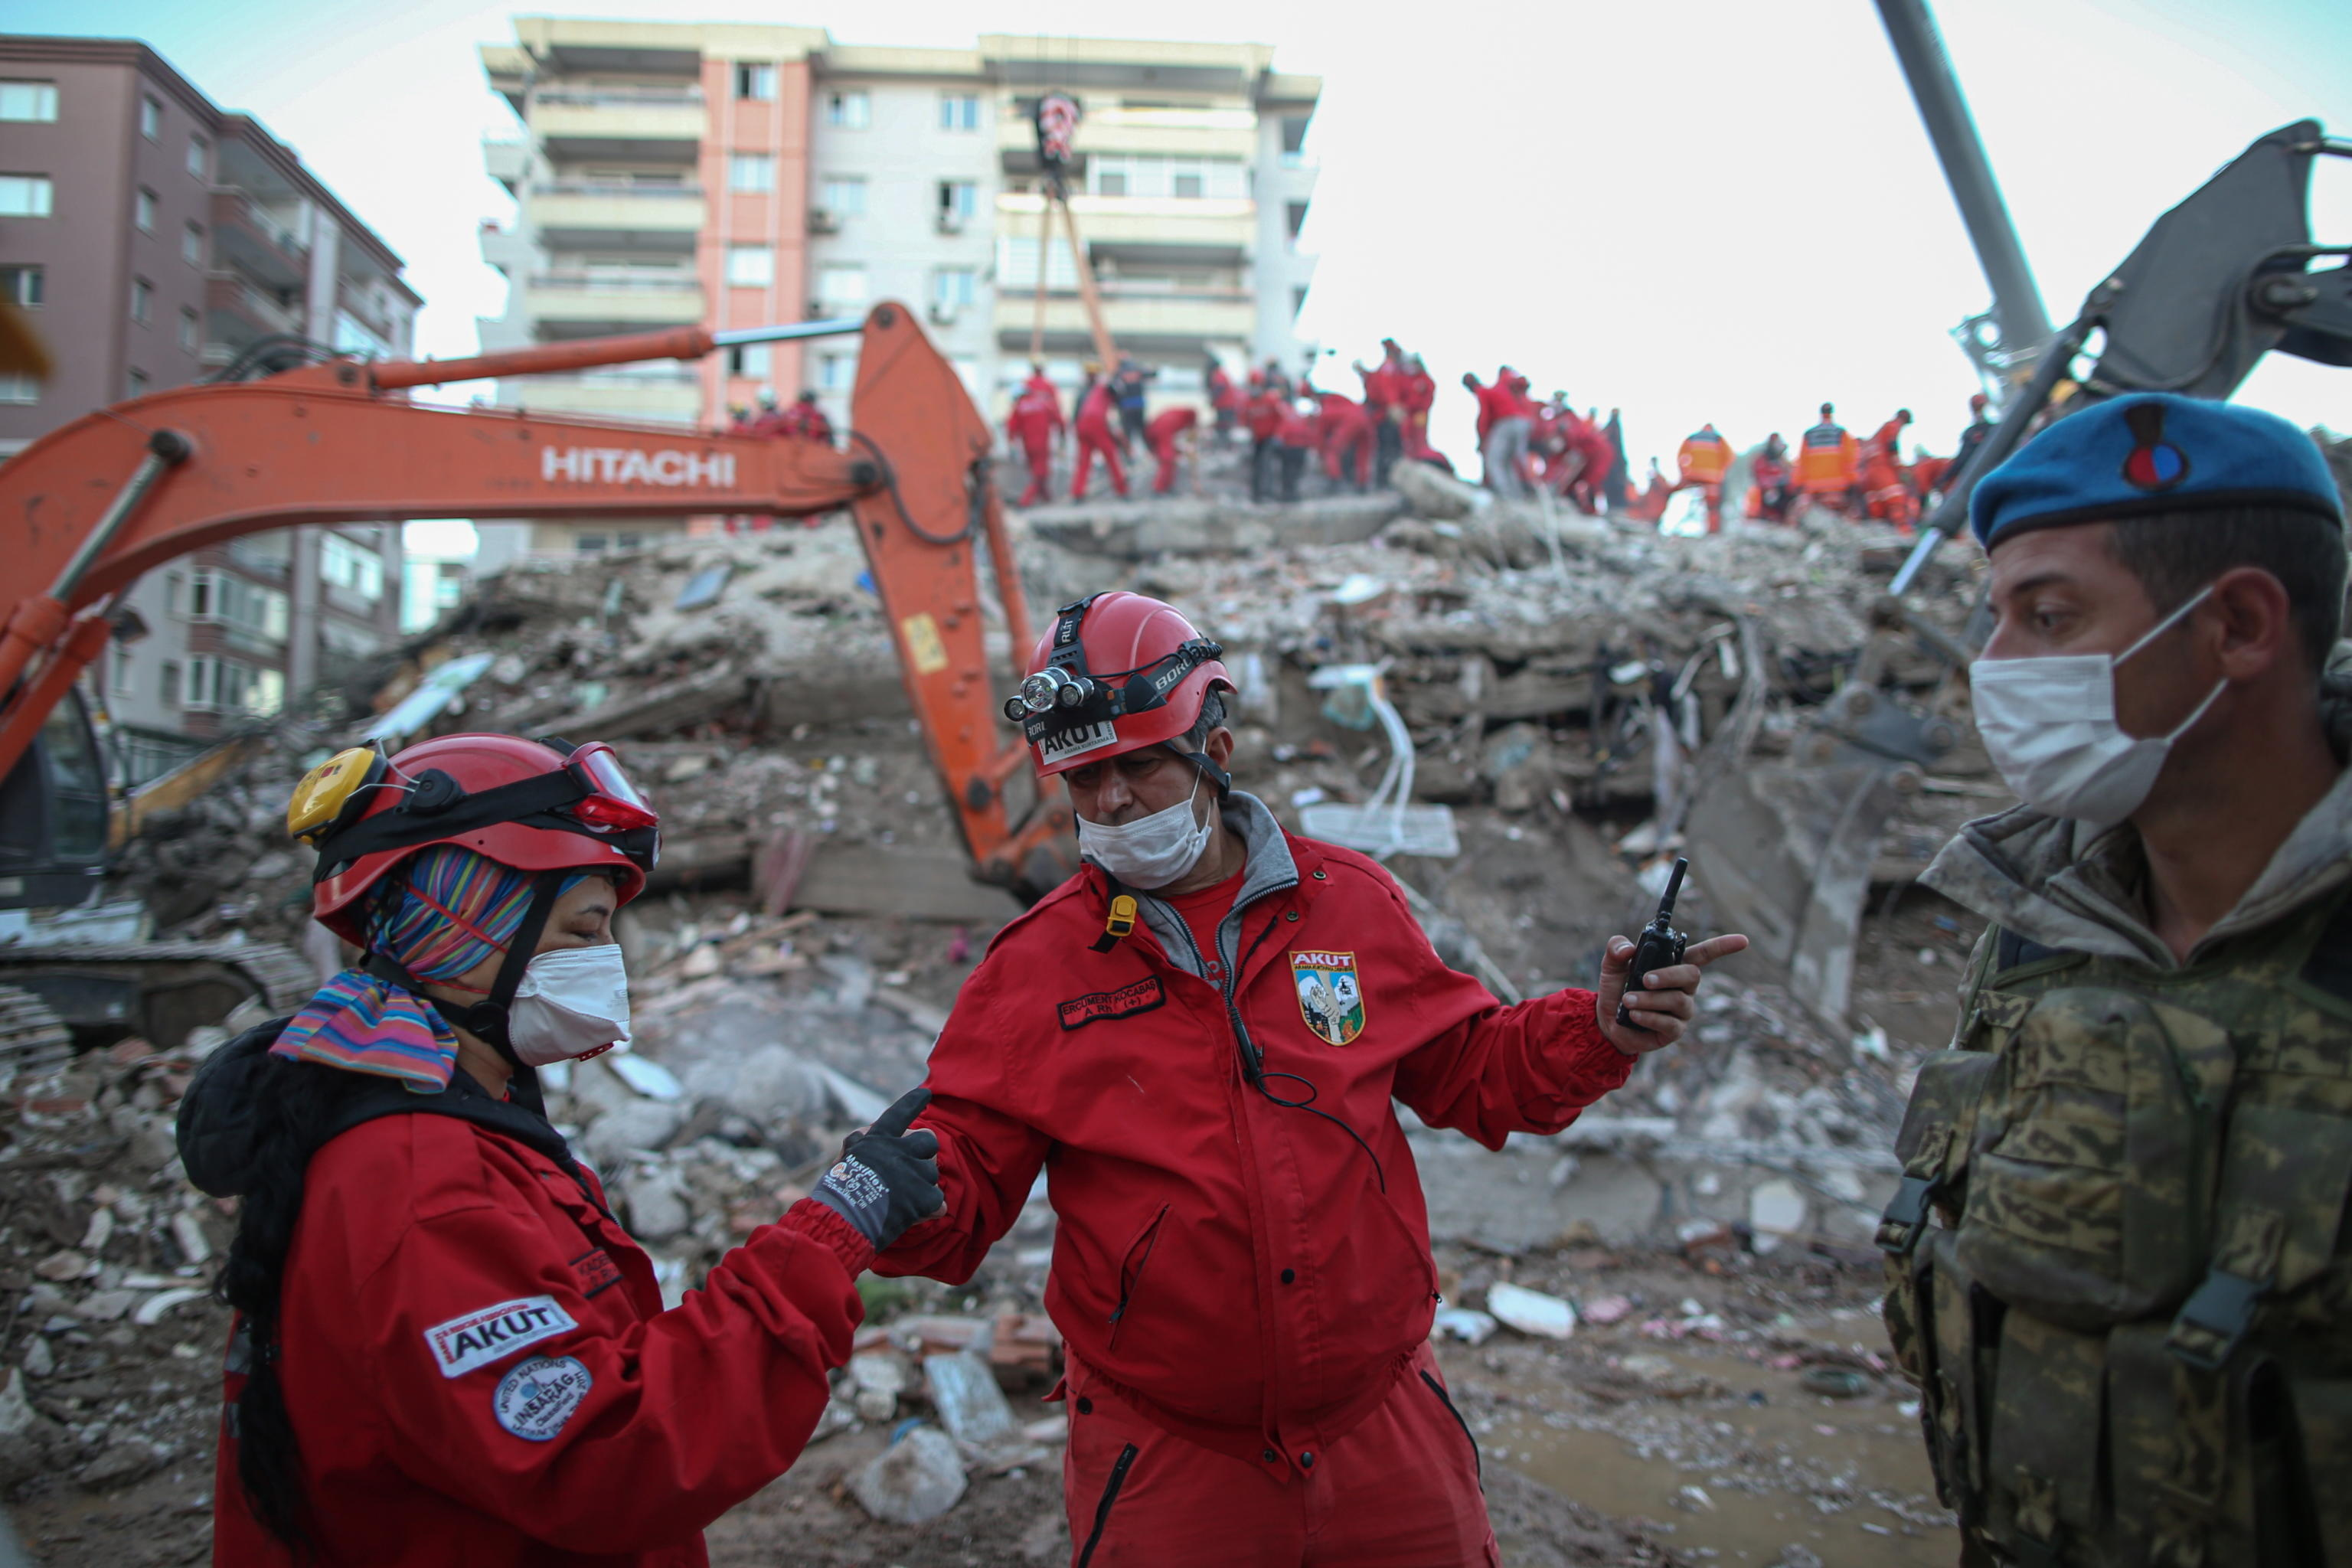 epa08790340 Rescue workers and people search for survivors at the site of a collapsed building after a 7.0 magnitude earthquake, originating in the Aegean Sea, hit the area in Izmir, Turkey, 01 November 2020. According to media reports, at least 49 people have died and more than 800 have been injured during the earthquake.  EPA/ERDEM SAHIN